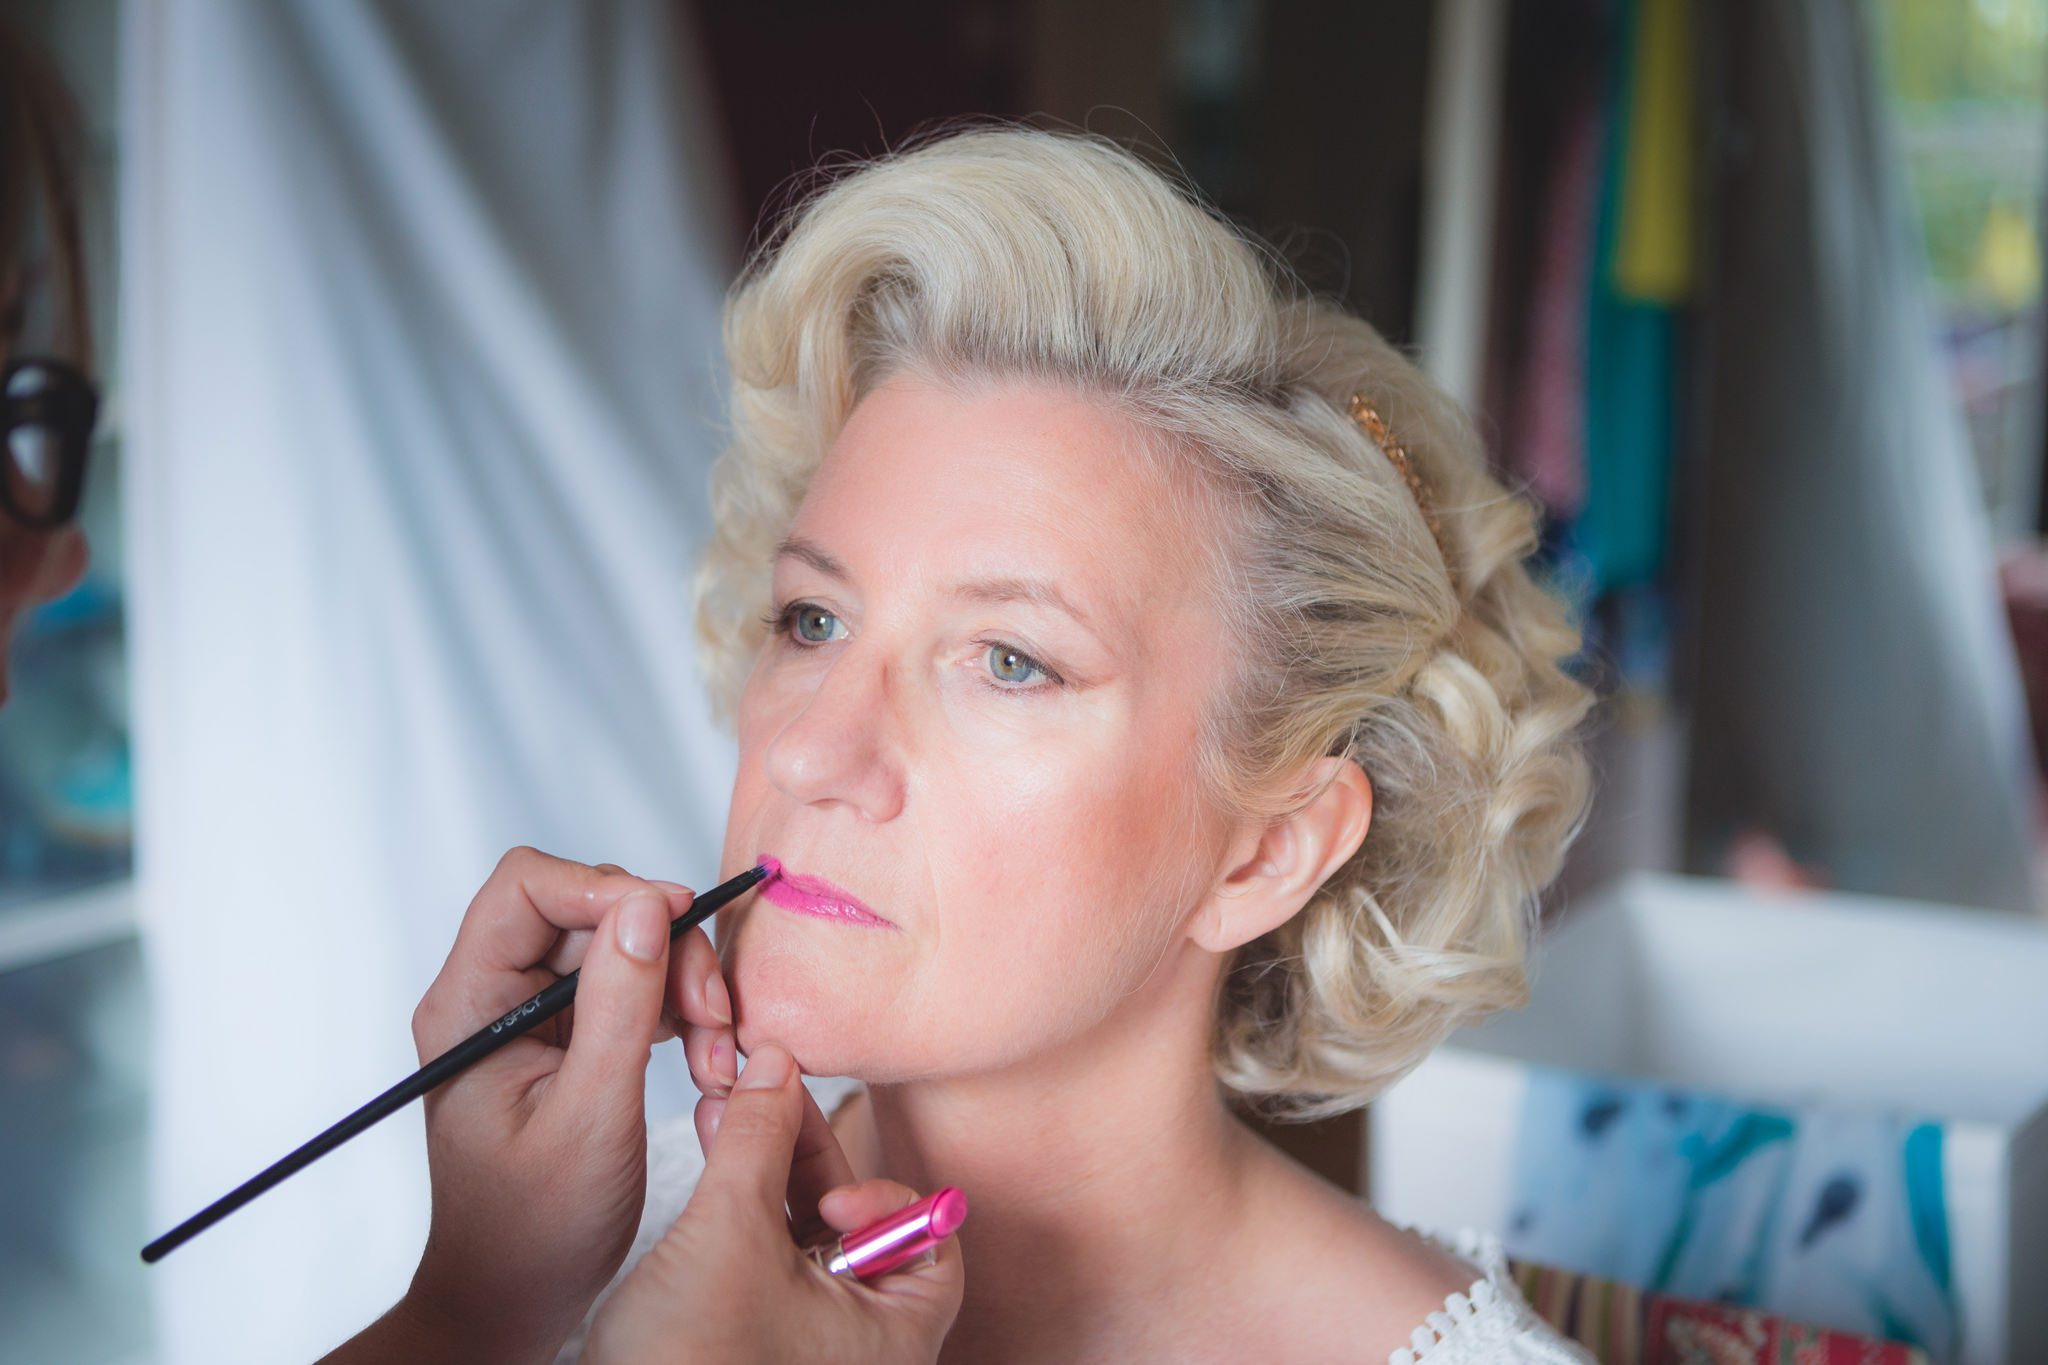 Derbyshire Wedding Photographer - Debbie and J - Makeup